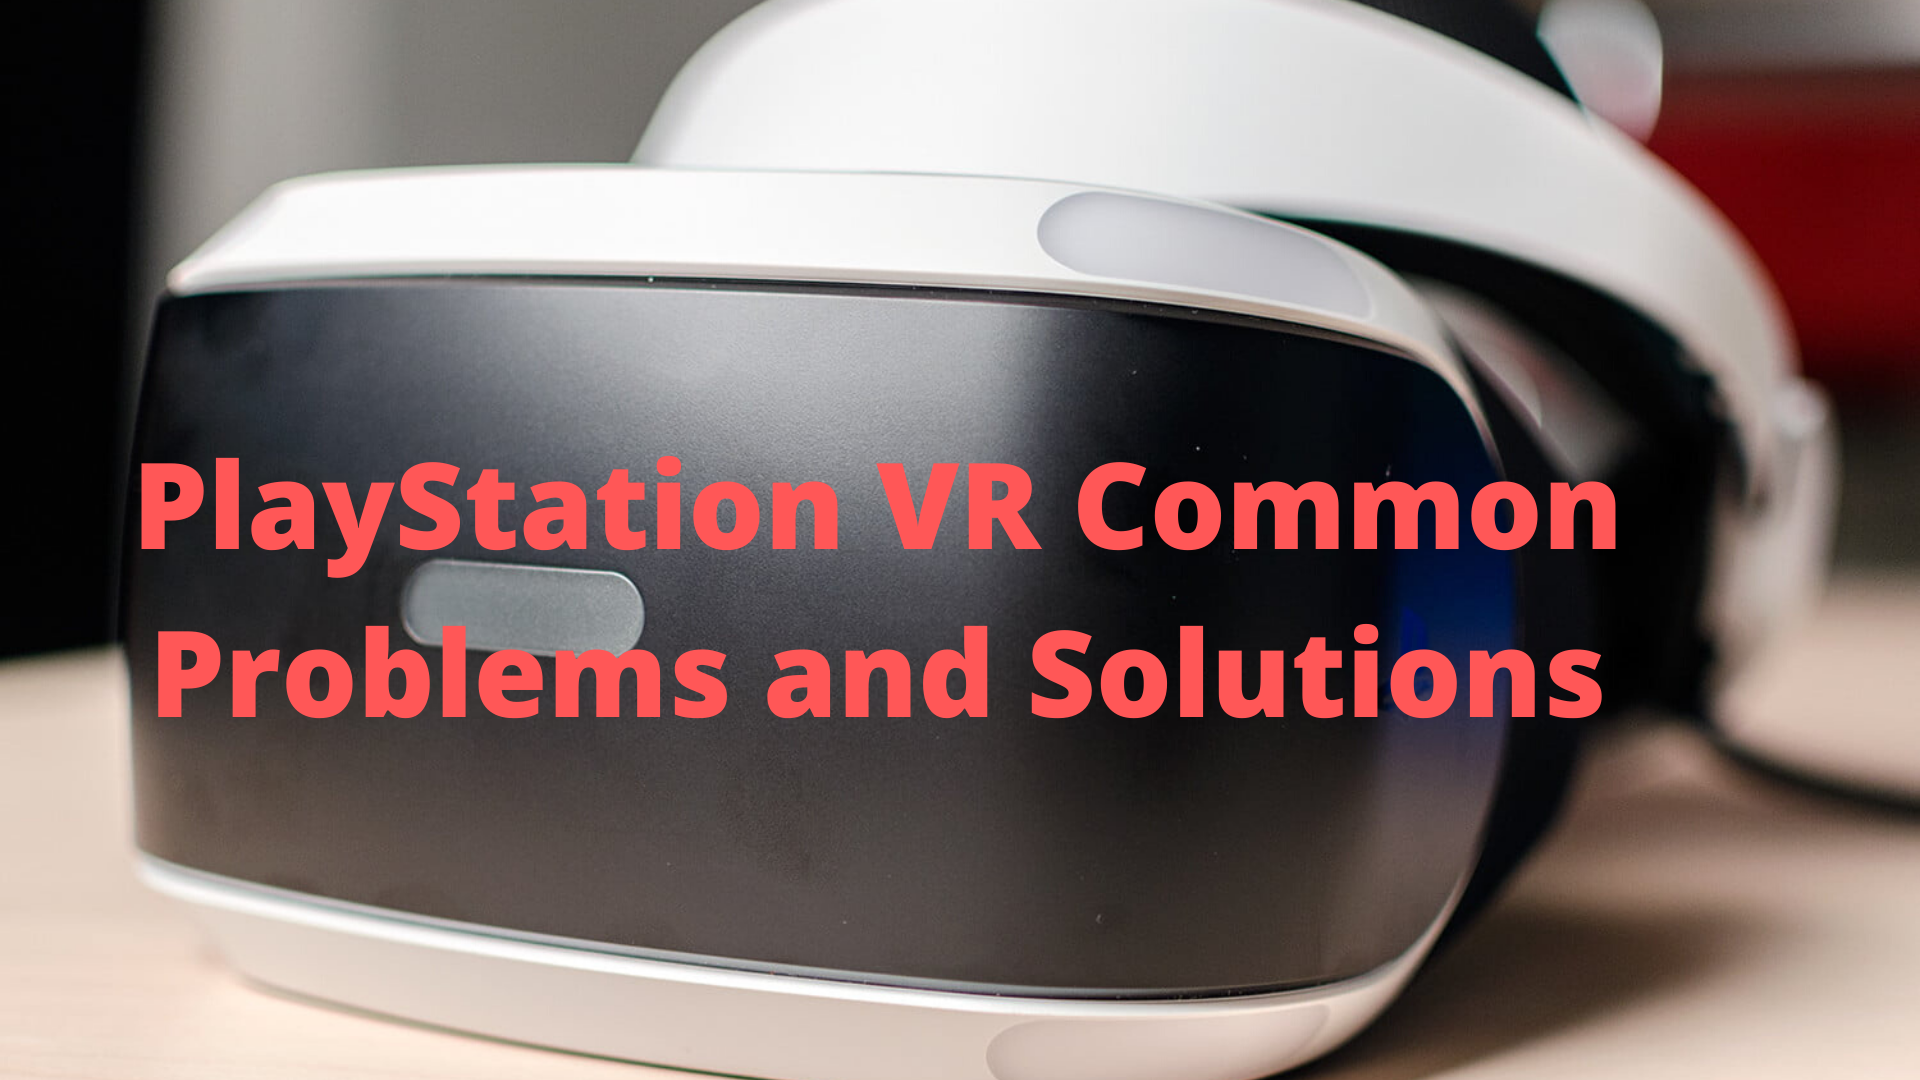 PlayStation VR Common Problems and Solutions